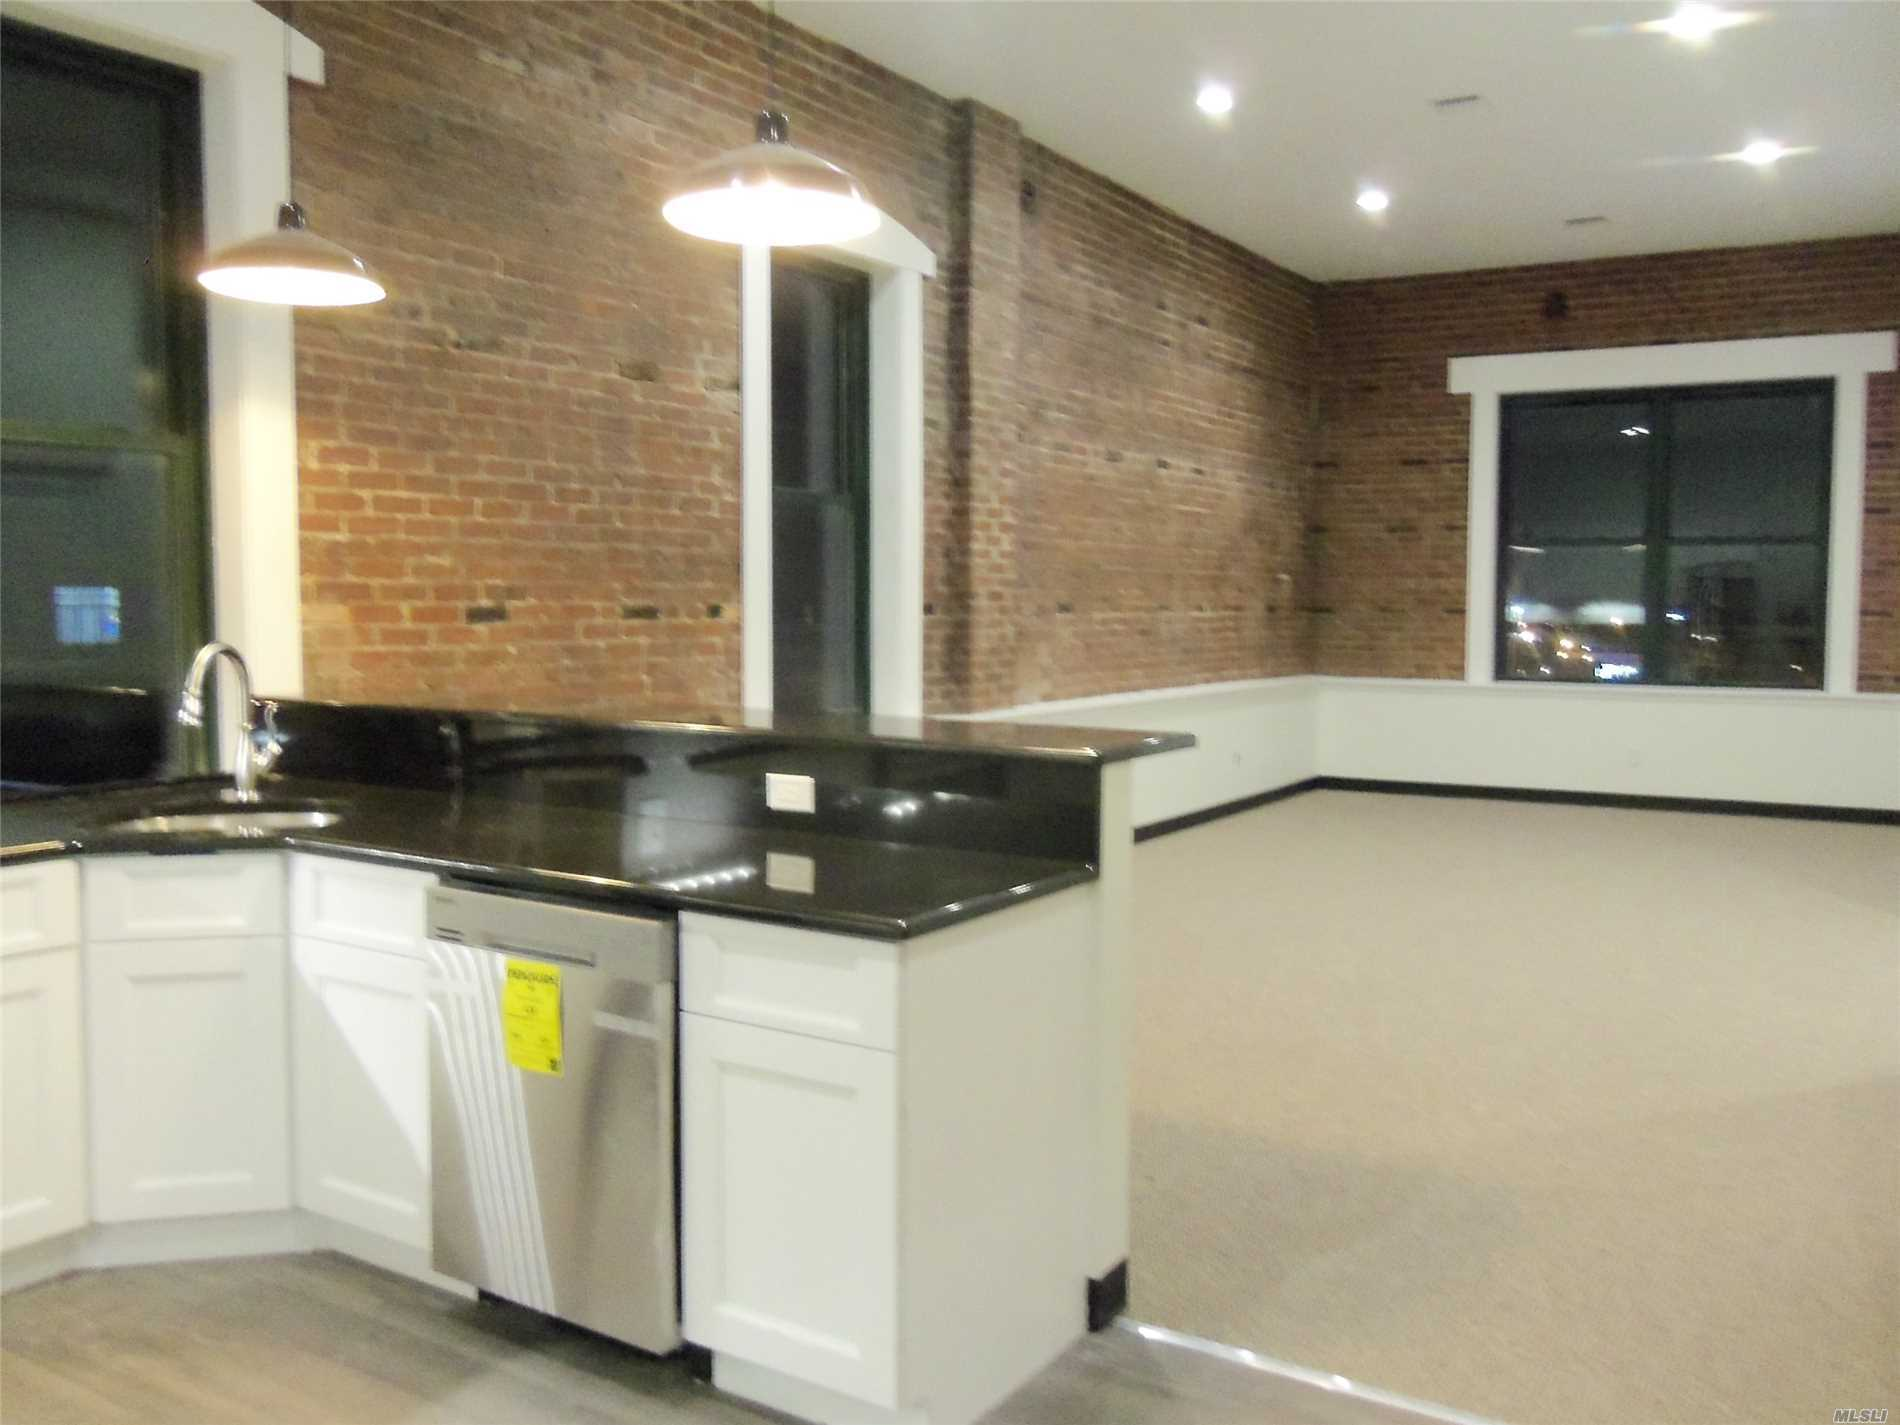 Stunning One Bedroom Apartment With Exposed Brick Walls And High Ceilings. Gorgeous Kitchen, Huge Living Room/Dining Area, Bedroom And Bath, All Brand New. Features Include New Stainless Steel Appliances And Washer And Dryer In Unit, Cac And All New Windows. Great Location Across From Lirr Station-40 Minutes To Manhattan!